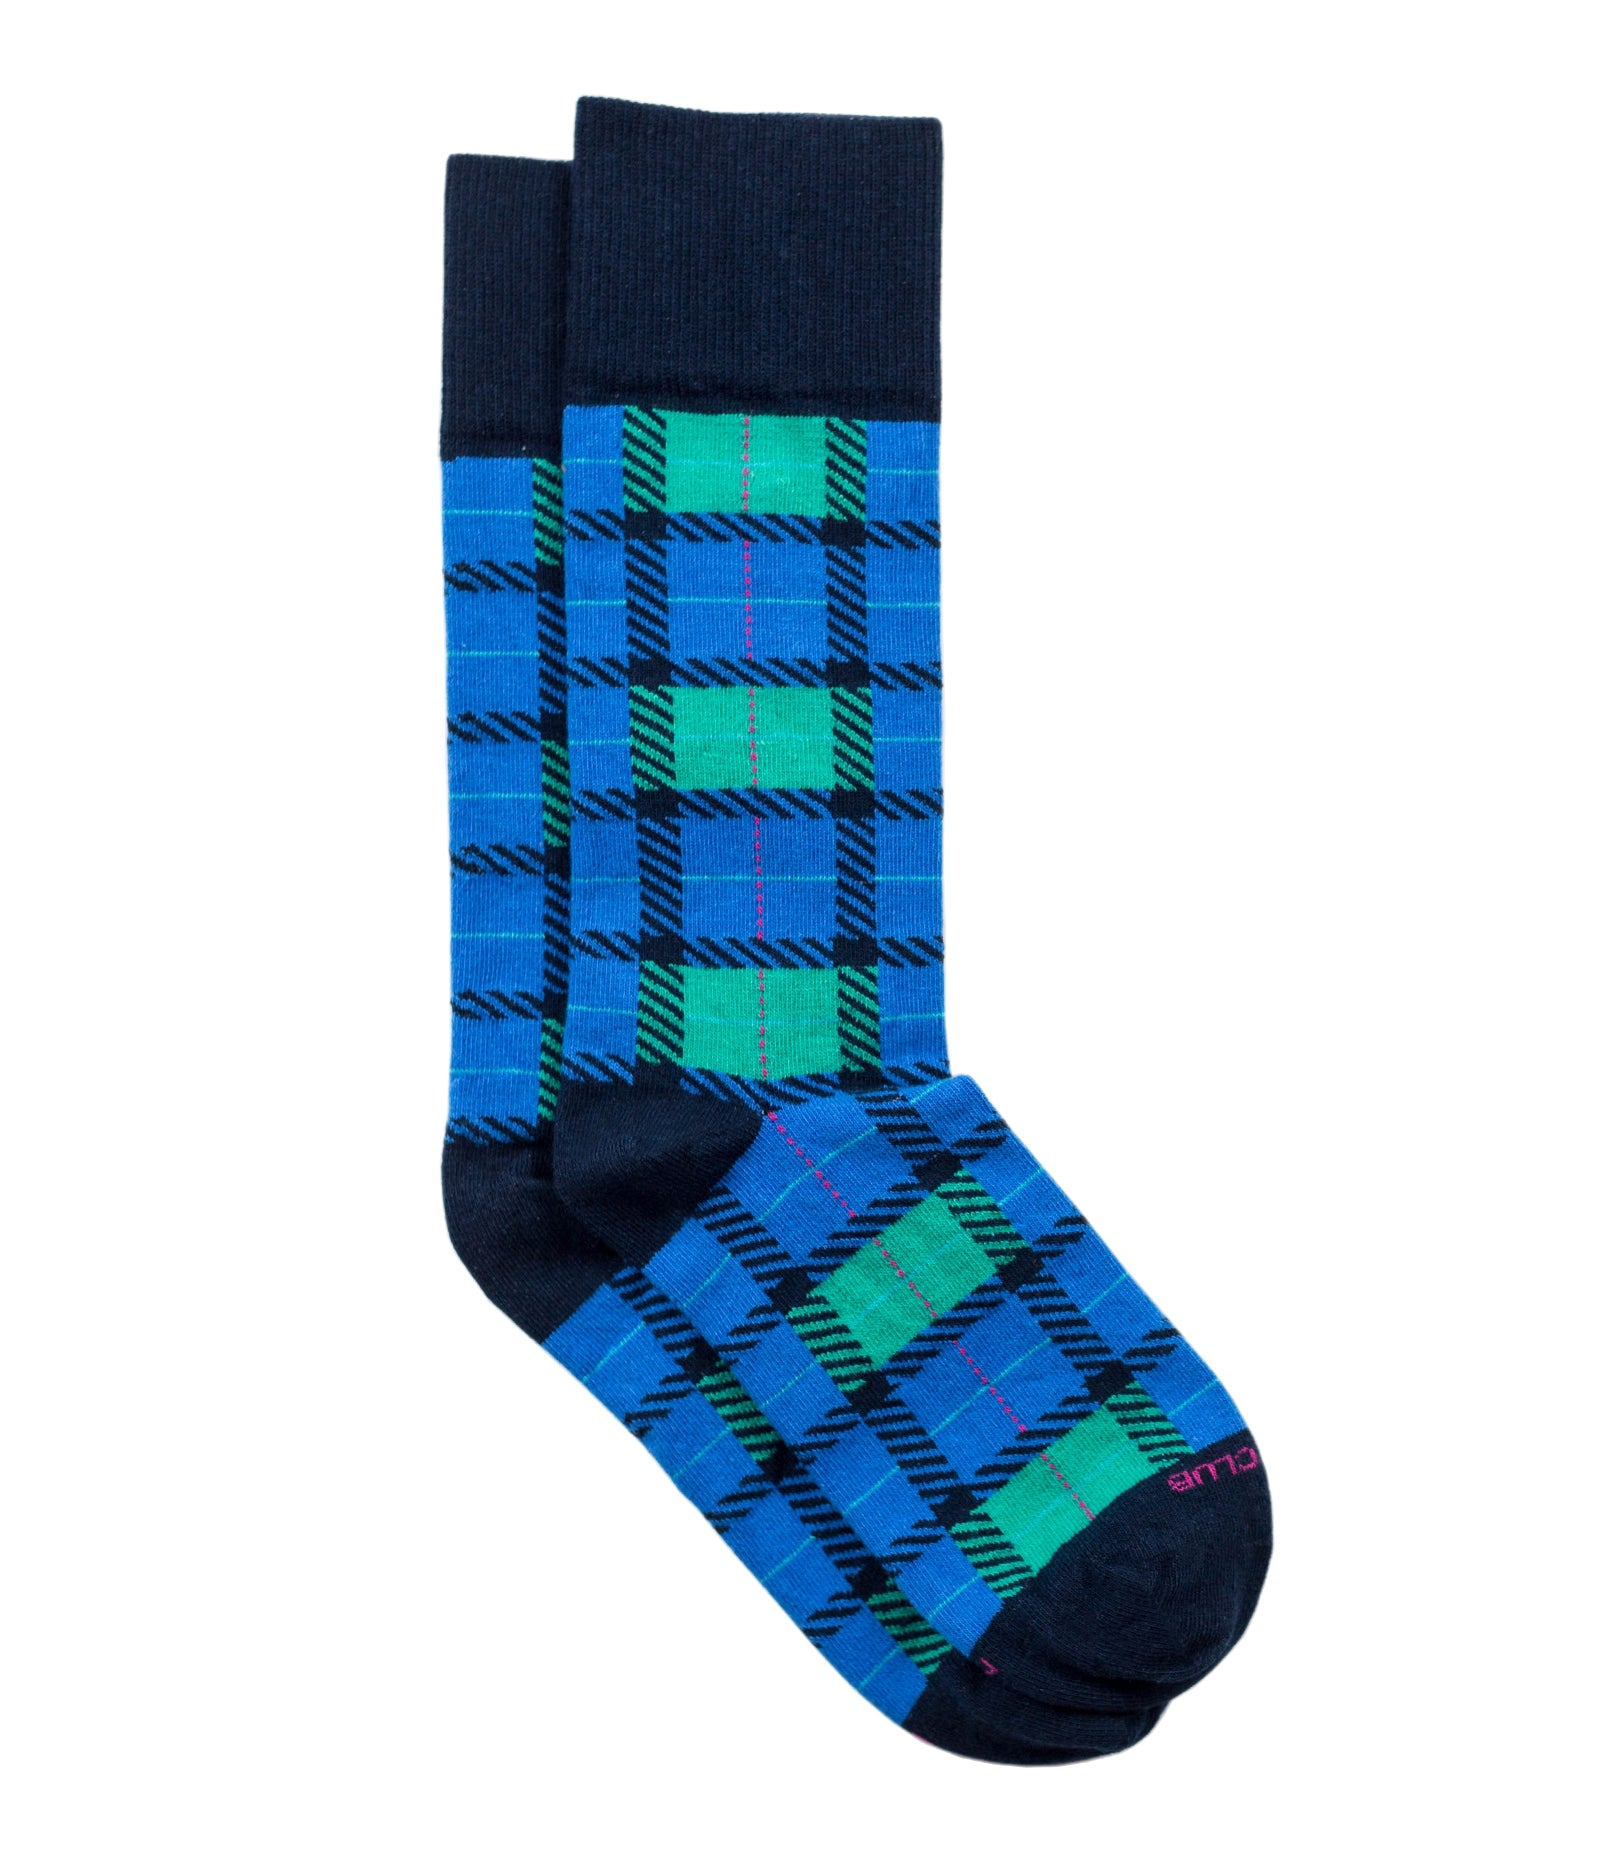 The Tartan - Blue - Sock Club Store